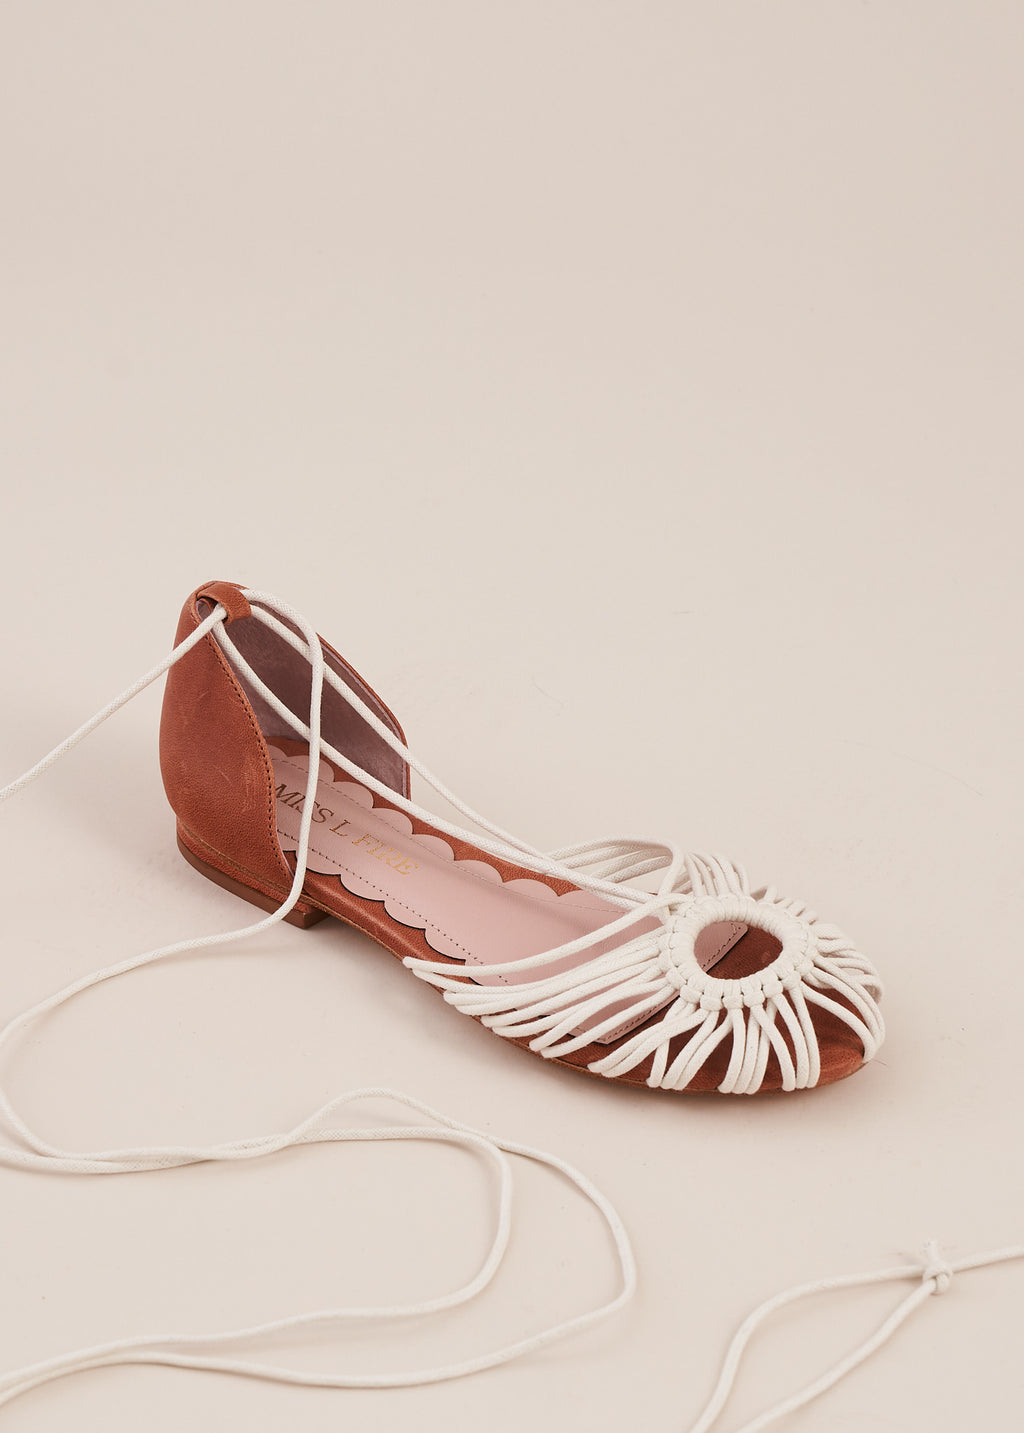 Penelope in natural is a ballet flat with a cotton cord hand woven macrame upper, tan leather heel counter and cord ankle tie straps.  By Miss L Fire. Limited edition, ethically made.